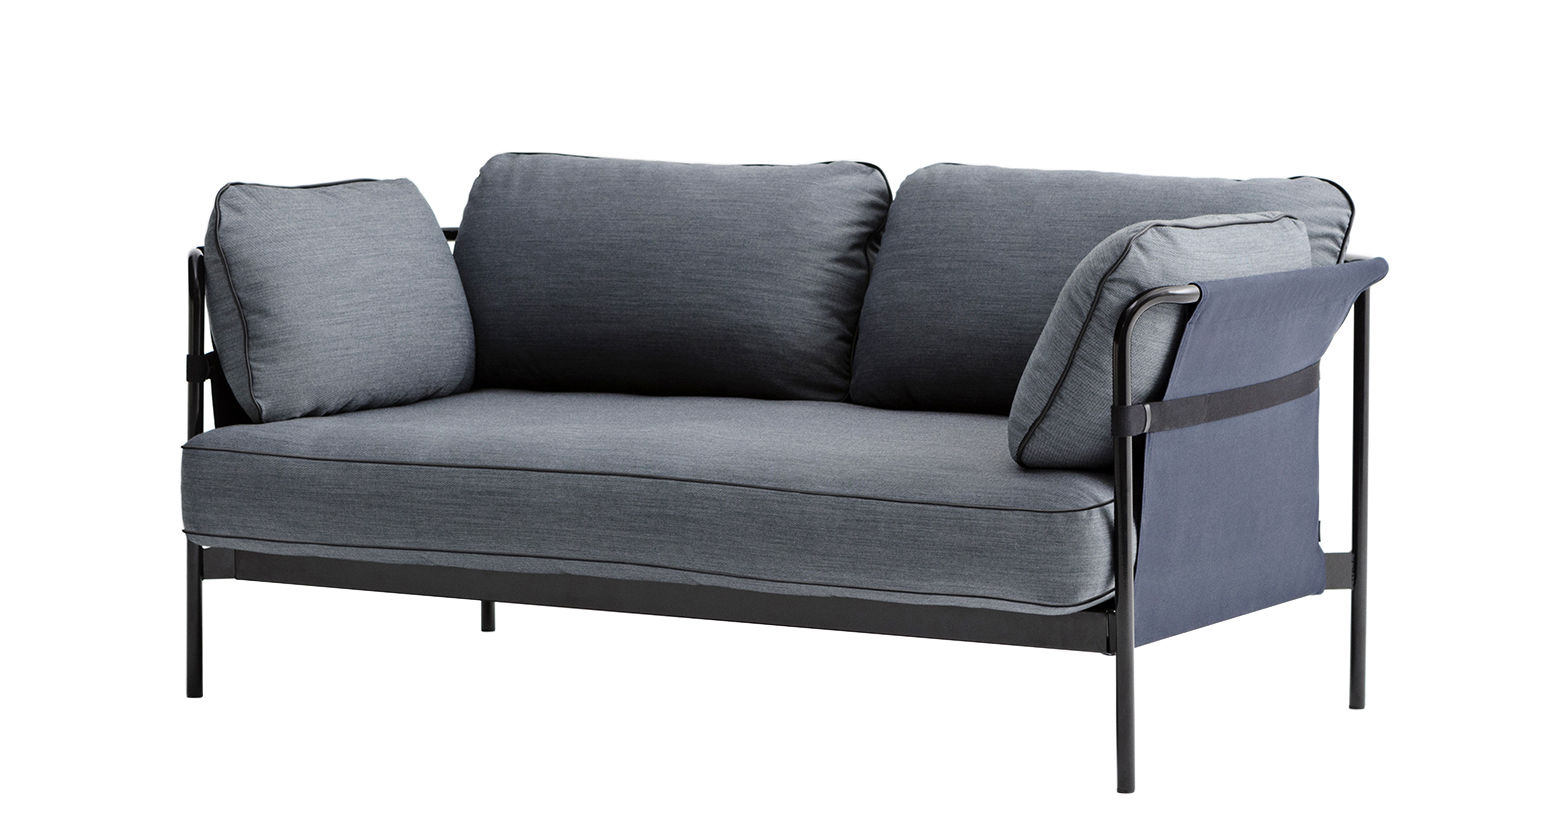 can straight sofa 2 seaters l 172 cm grey blue black. Black Bedroom Furniture Sets. Home Design Ideas